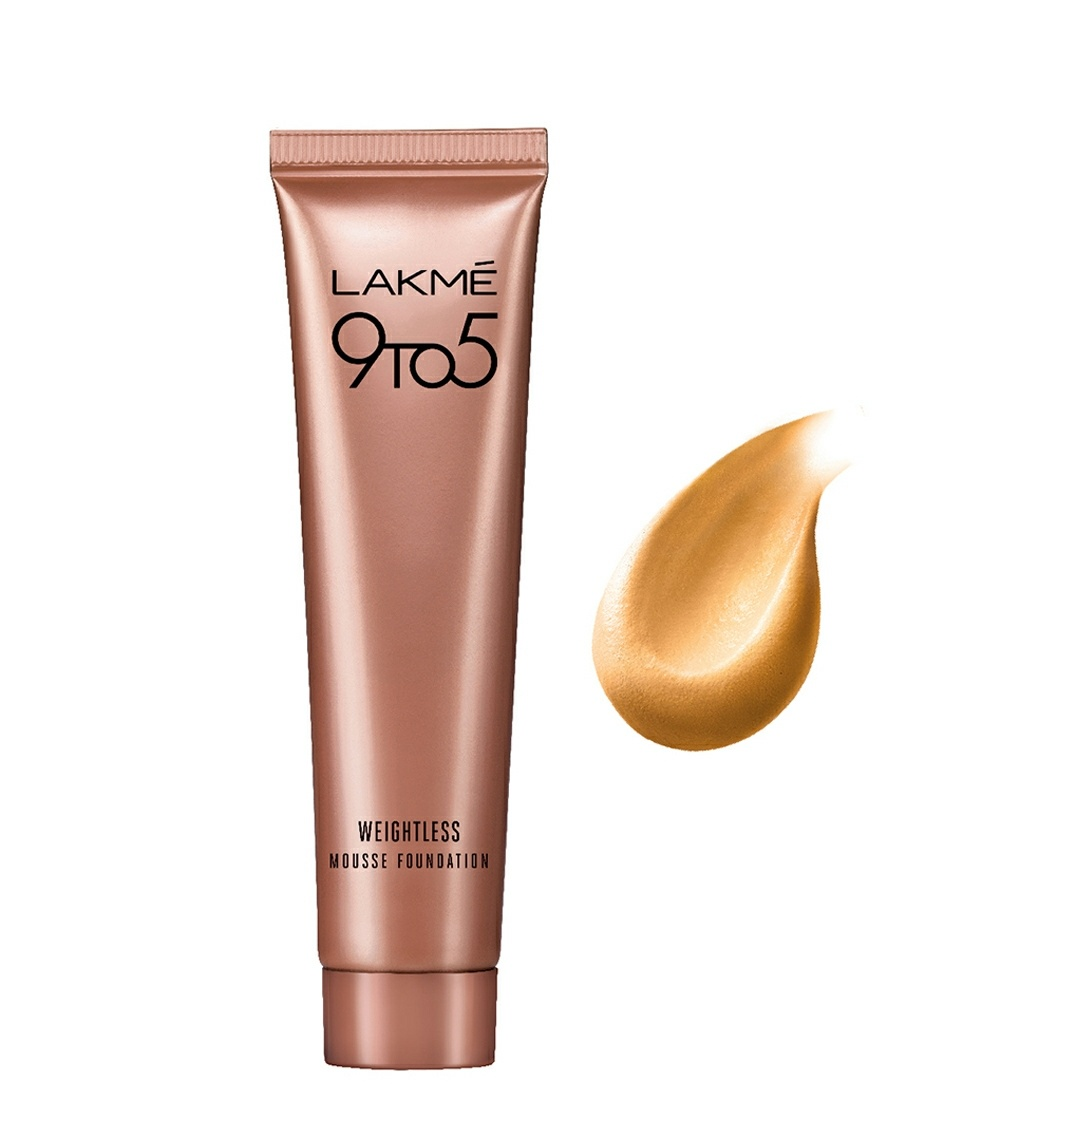 lakme 9 to 5 mousse